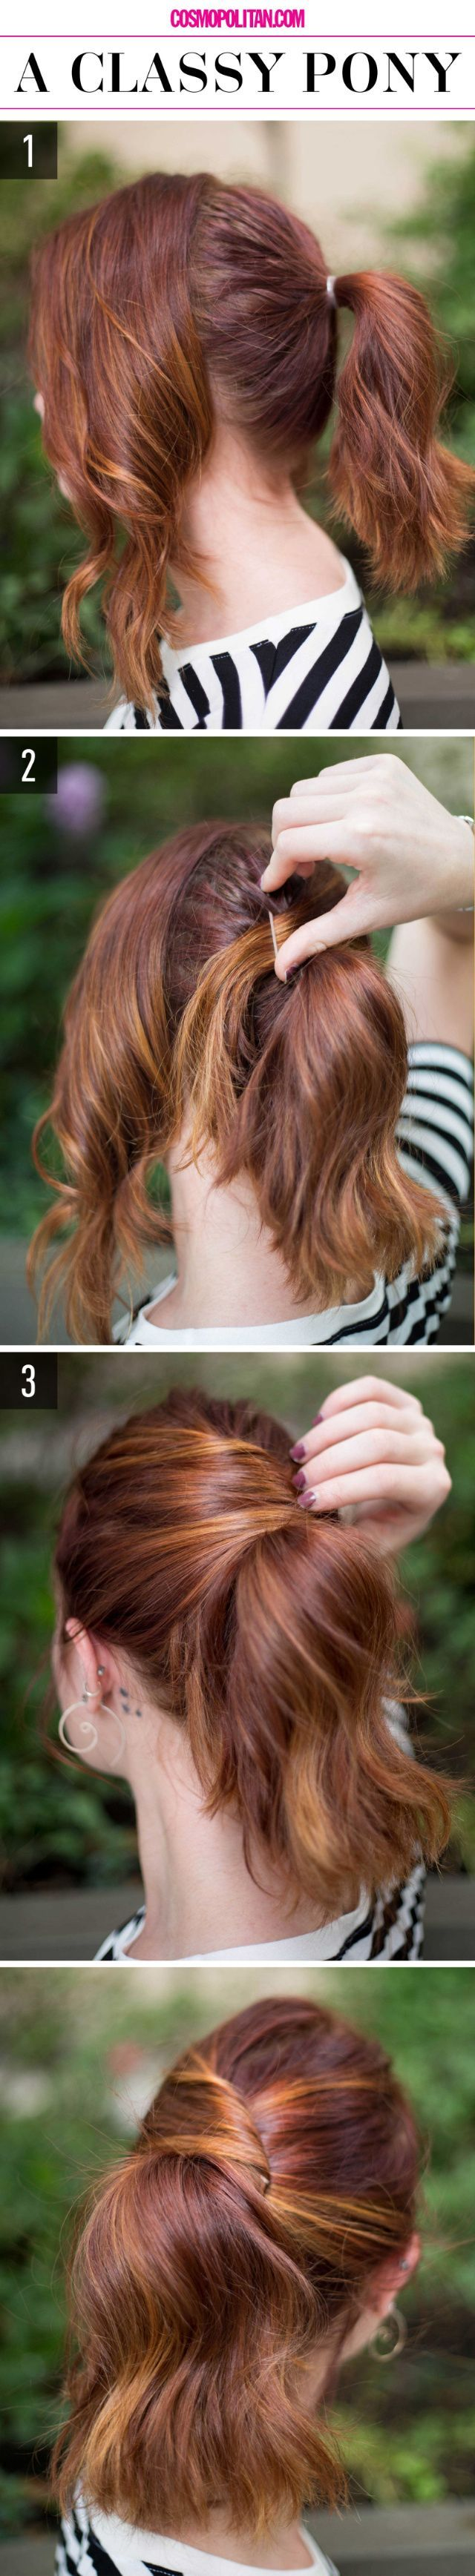 The 196 best Easy hairstyles images on Pinterest